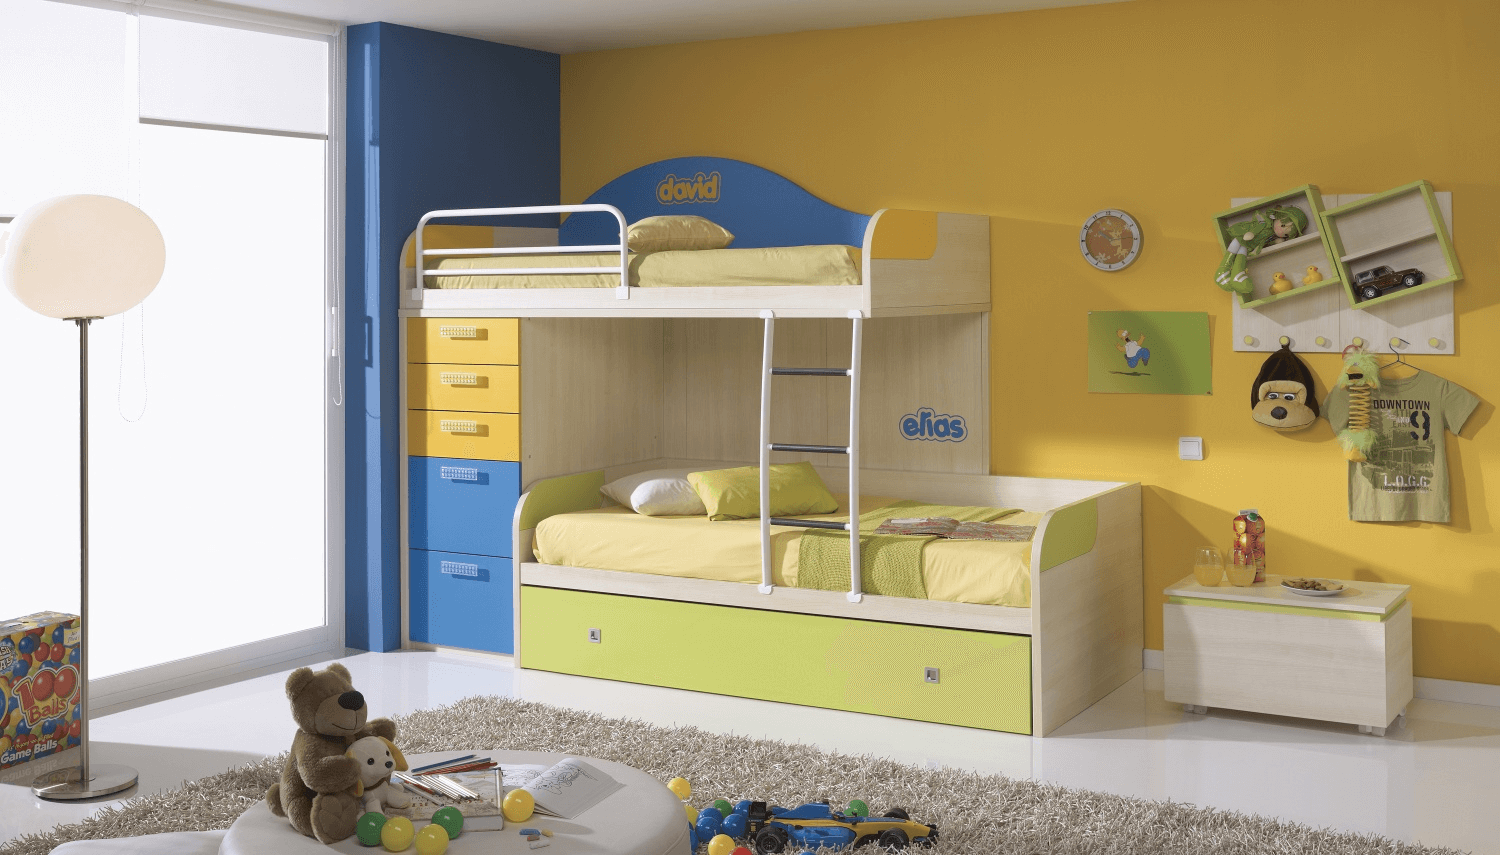 Green Yellow Camp Wall Bedroom Color Idea with Bunk Bed for Kids